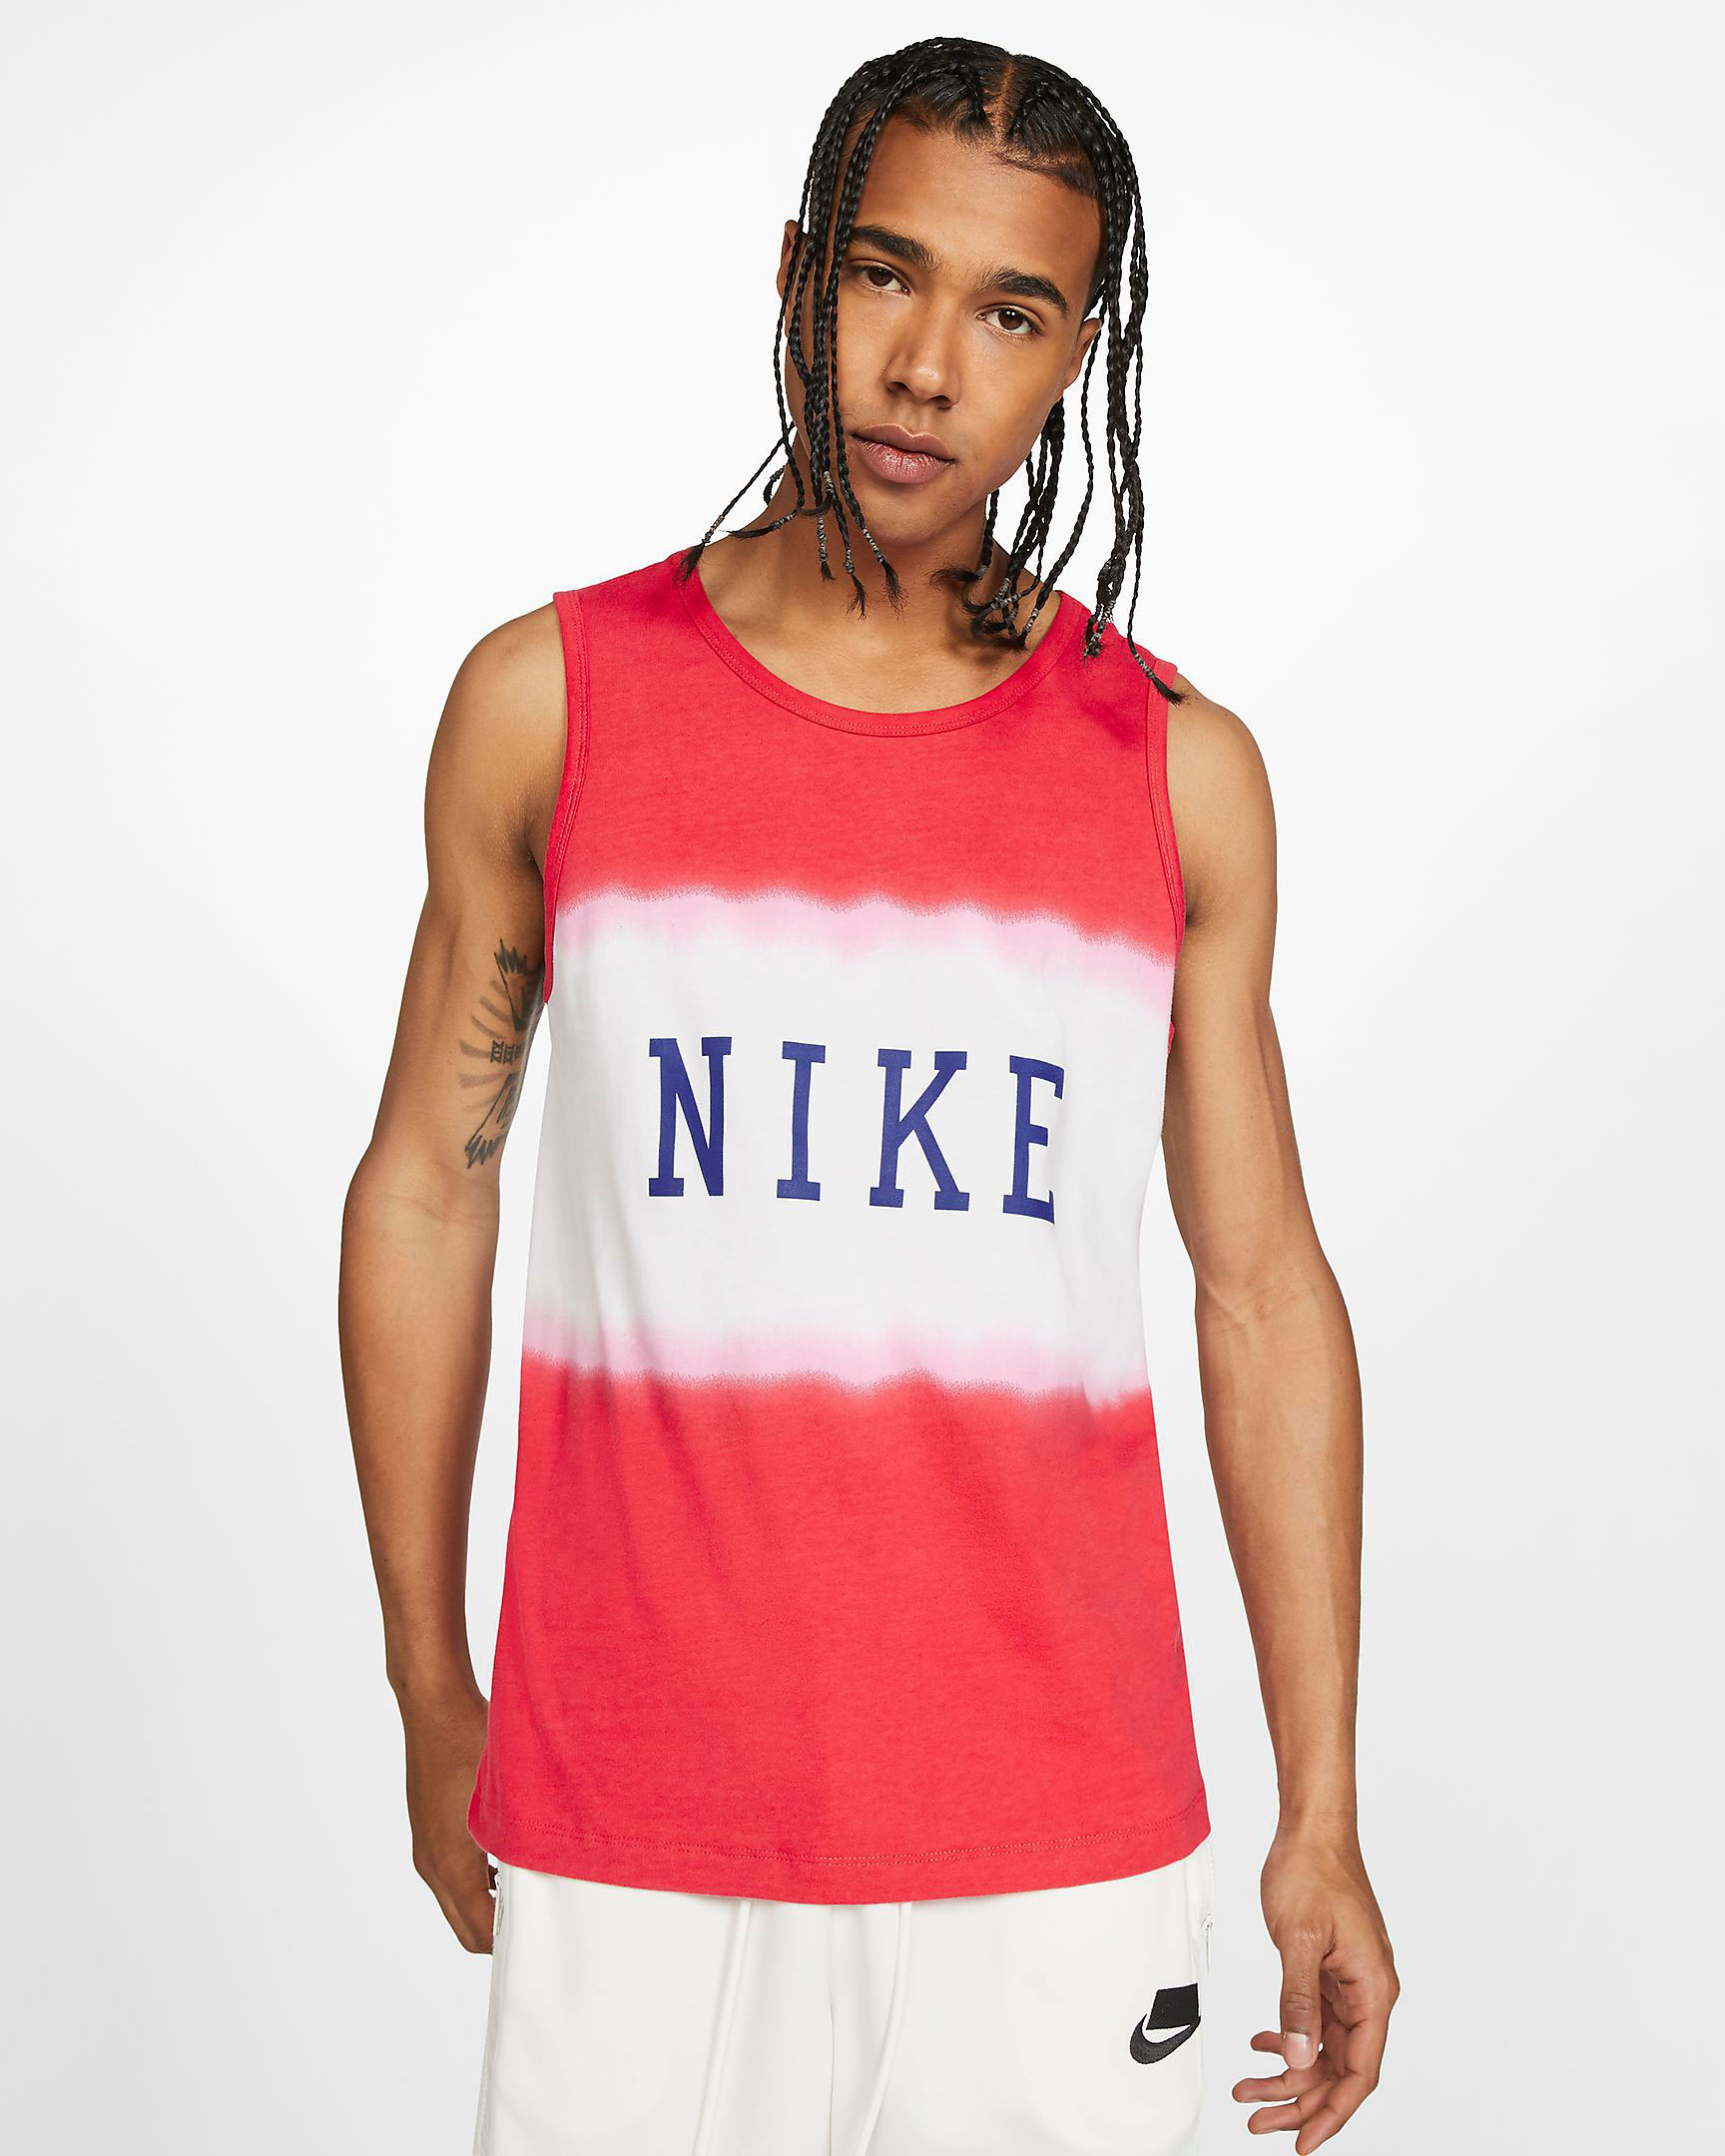 nike-kybrid-s2-what-the-usa-tank-top-1